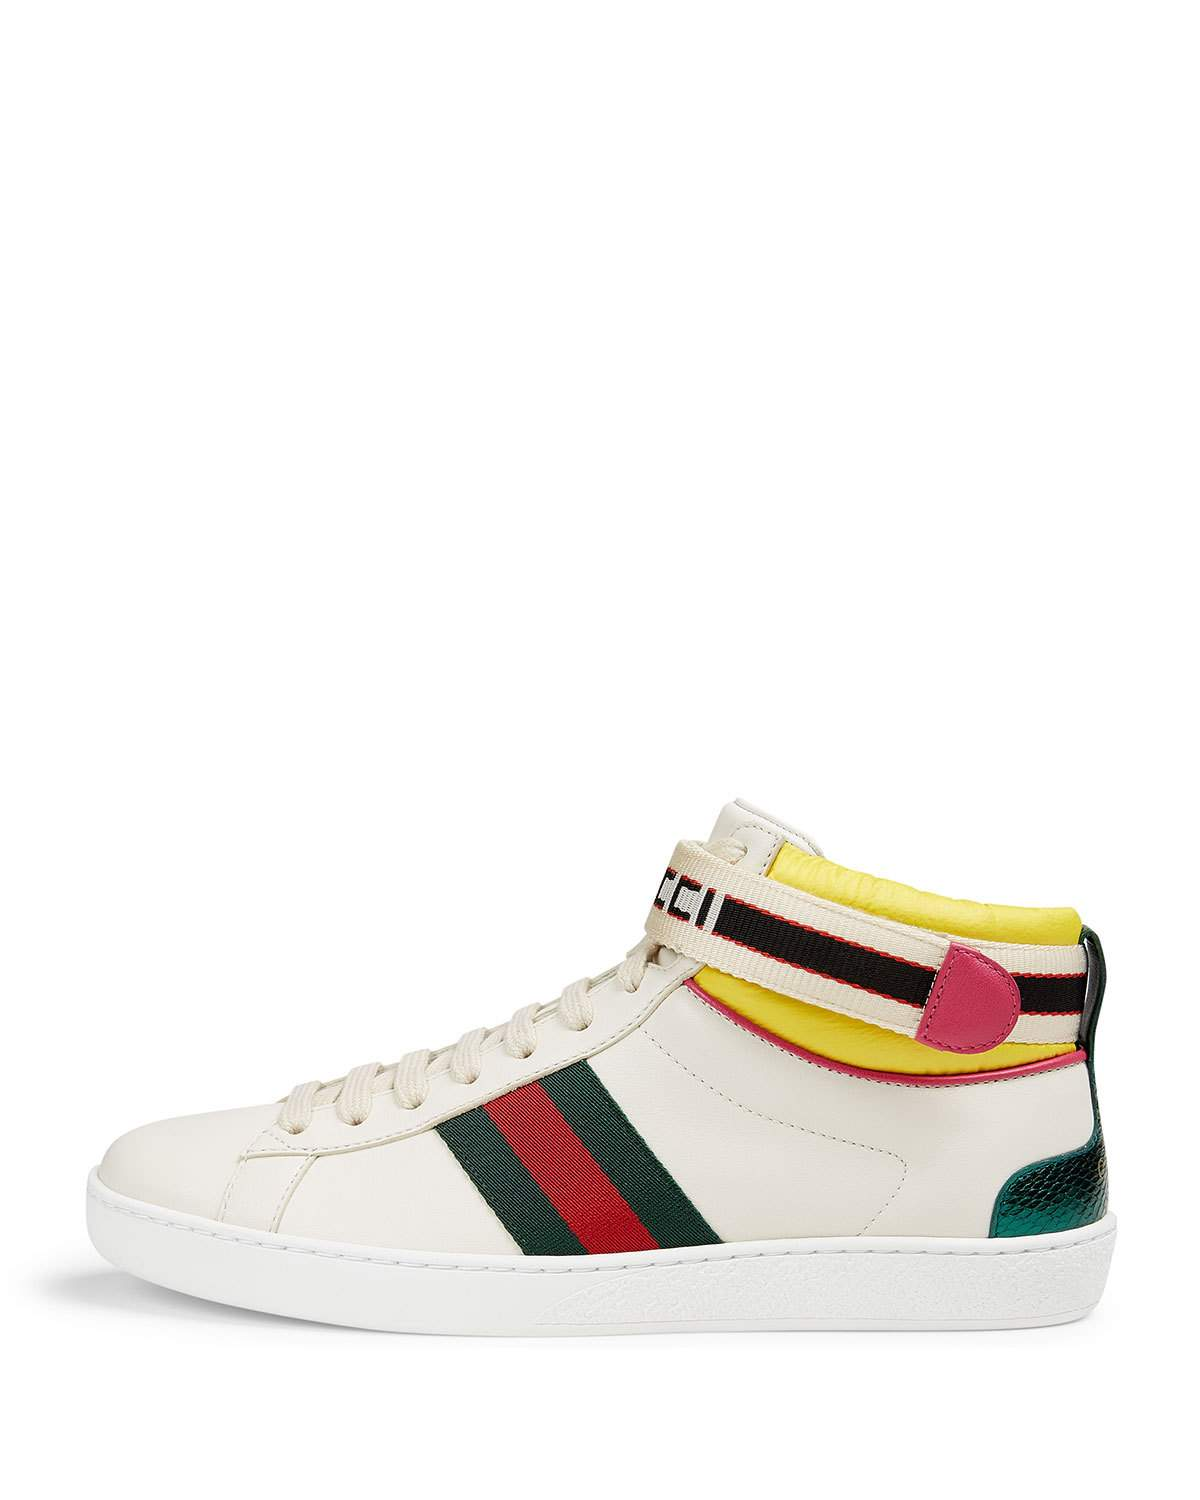 b3fc11d6d962 Gucci Ace Leather High-Top Sneaker with Logo Ankle Strap